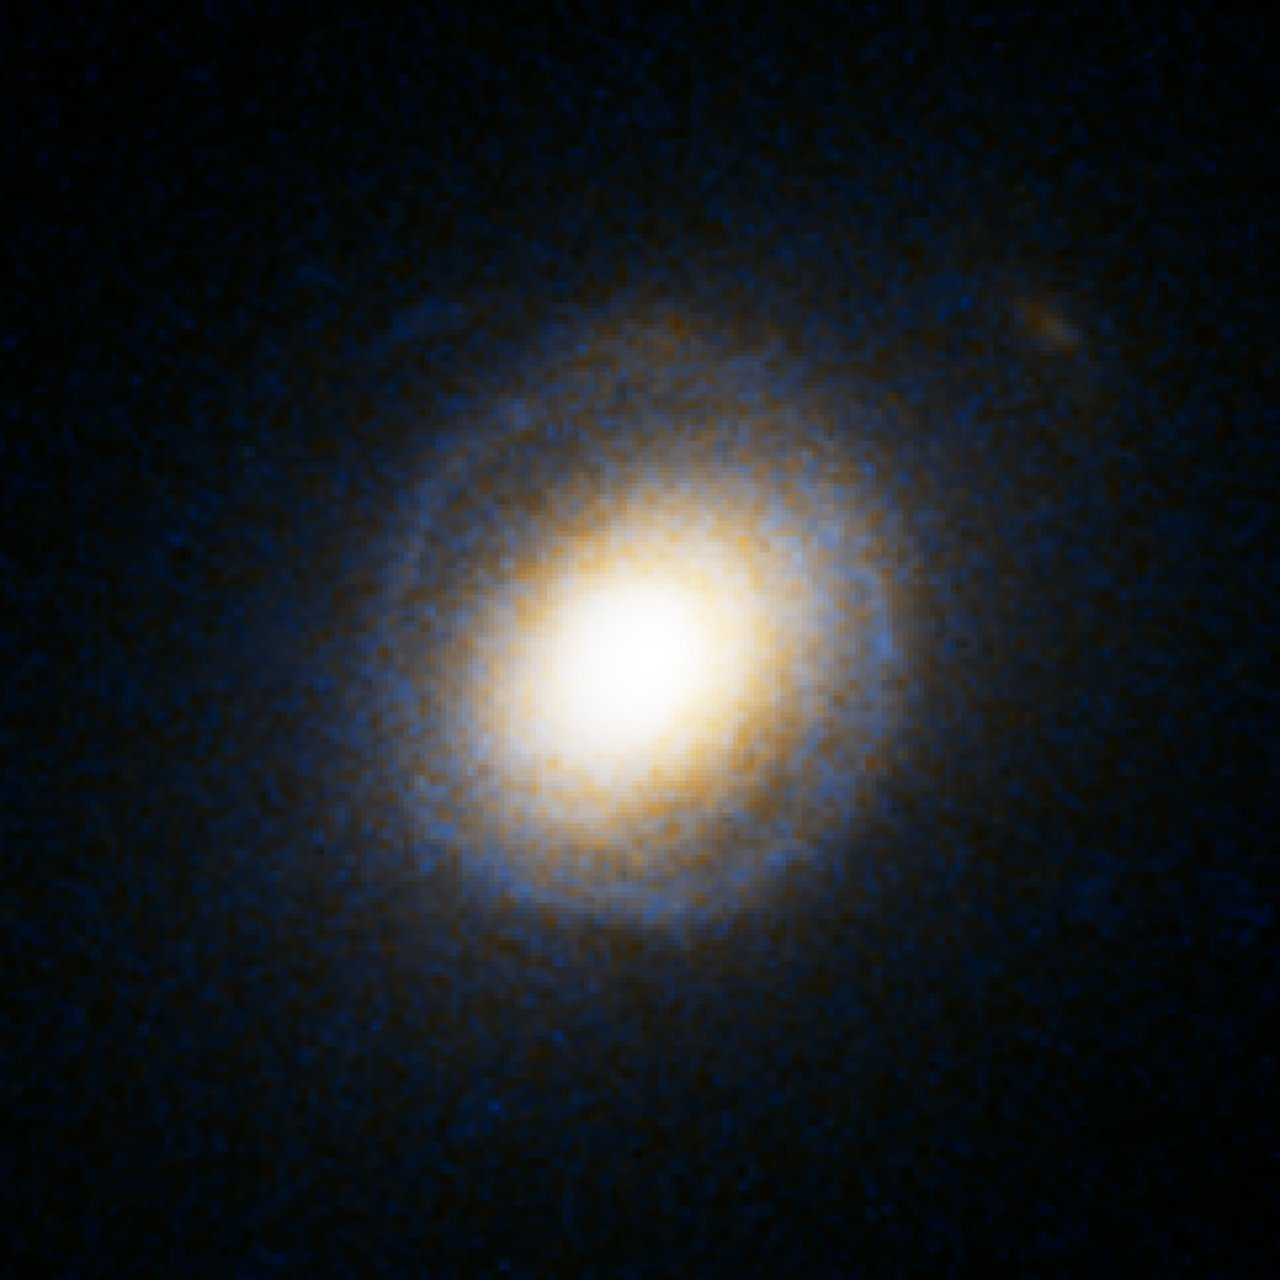 Einstein Ring Gravitational Lens: SDSS J232120.93-093910.2